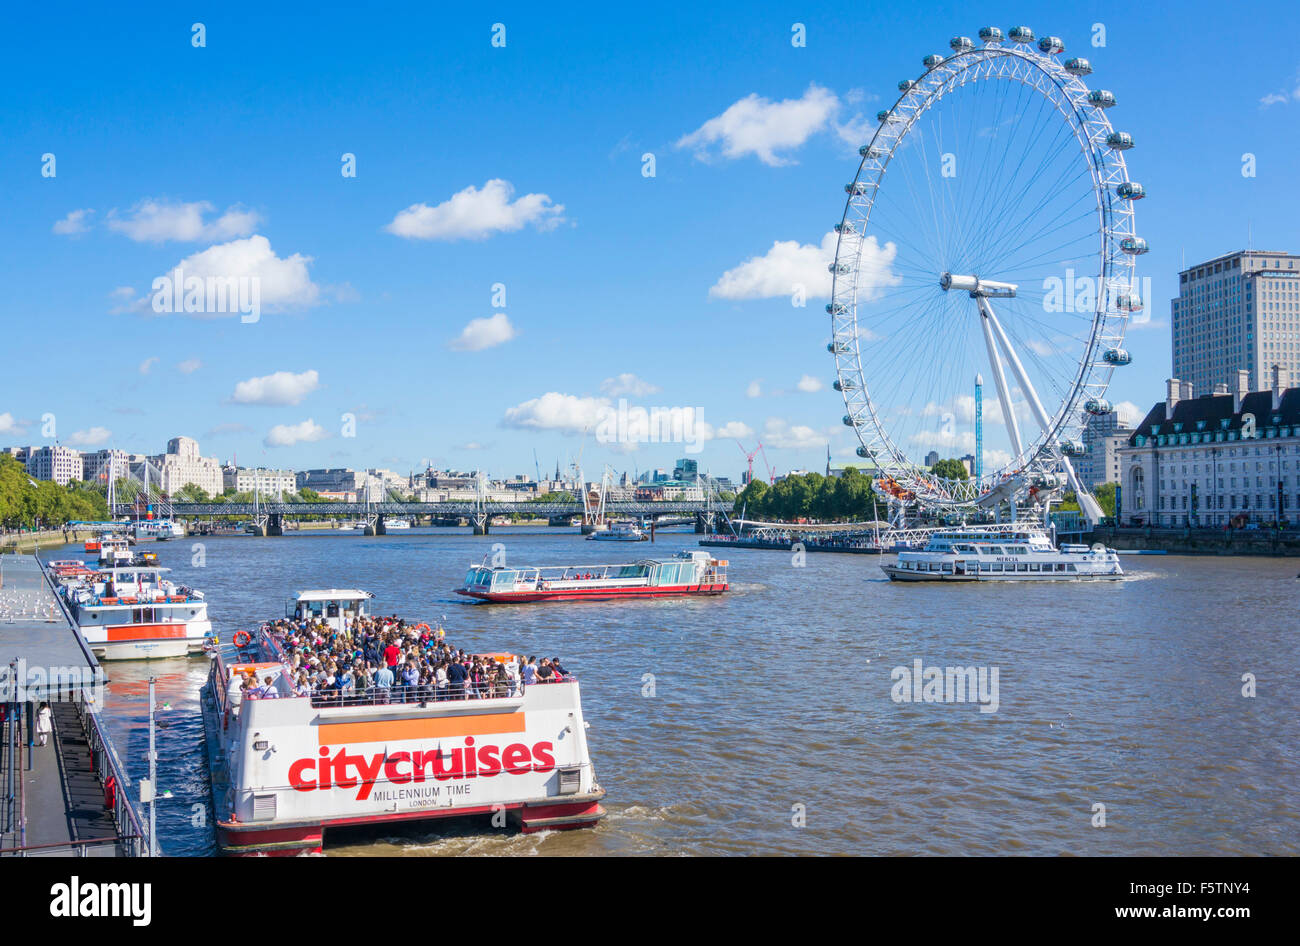 River Thames cruise boats and The London Eye on the South Bank of the River Thames London England GB UK EU Europe - Stock Image